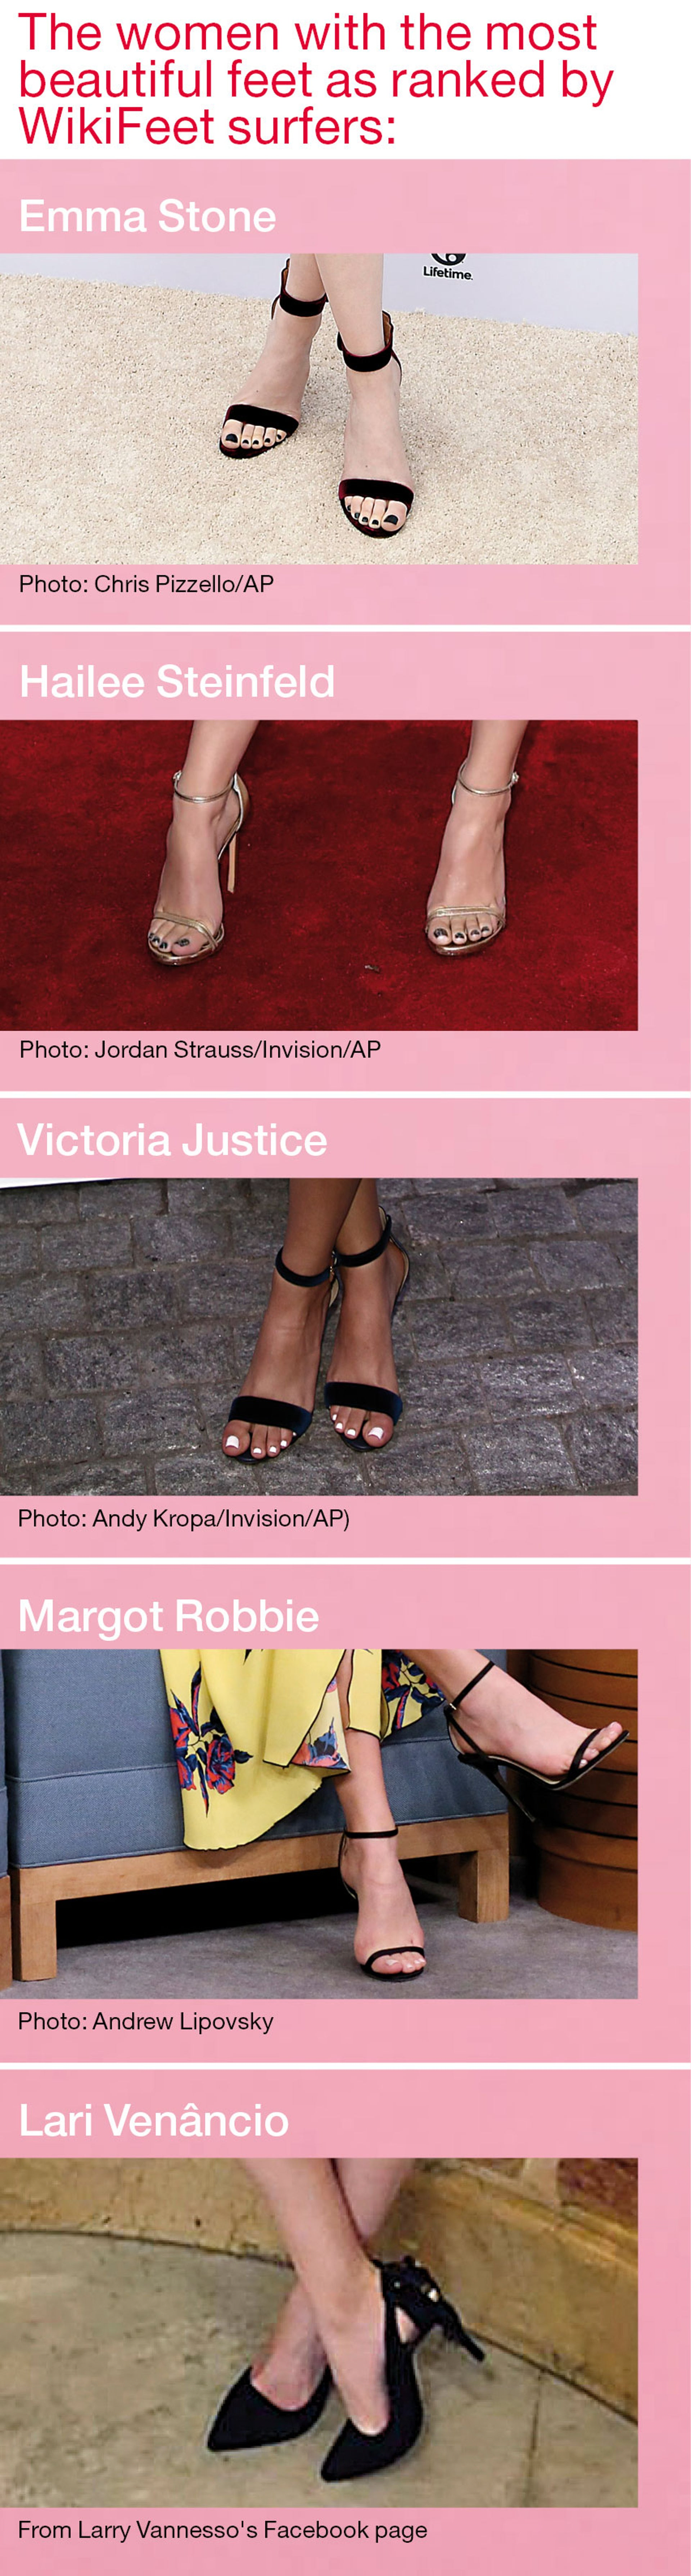 The women with the most beautiful feet as ranked by WikiFeet surfers: